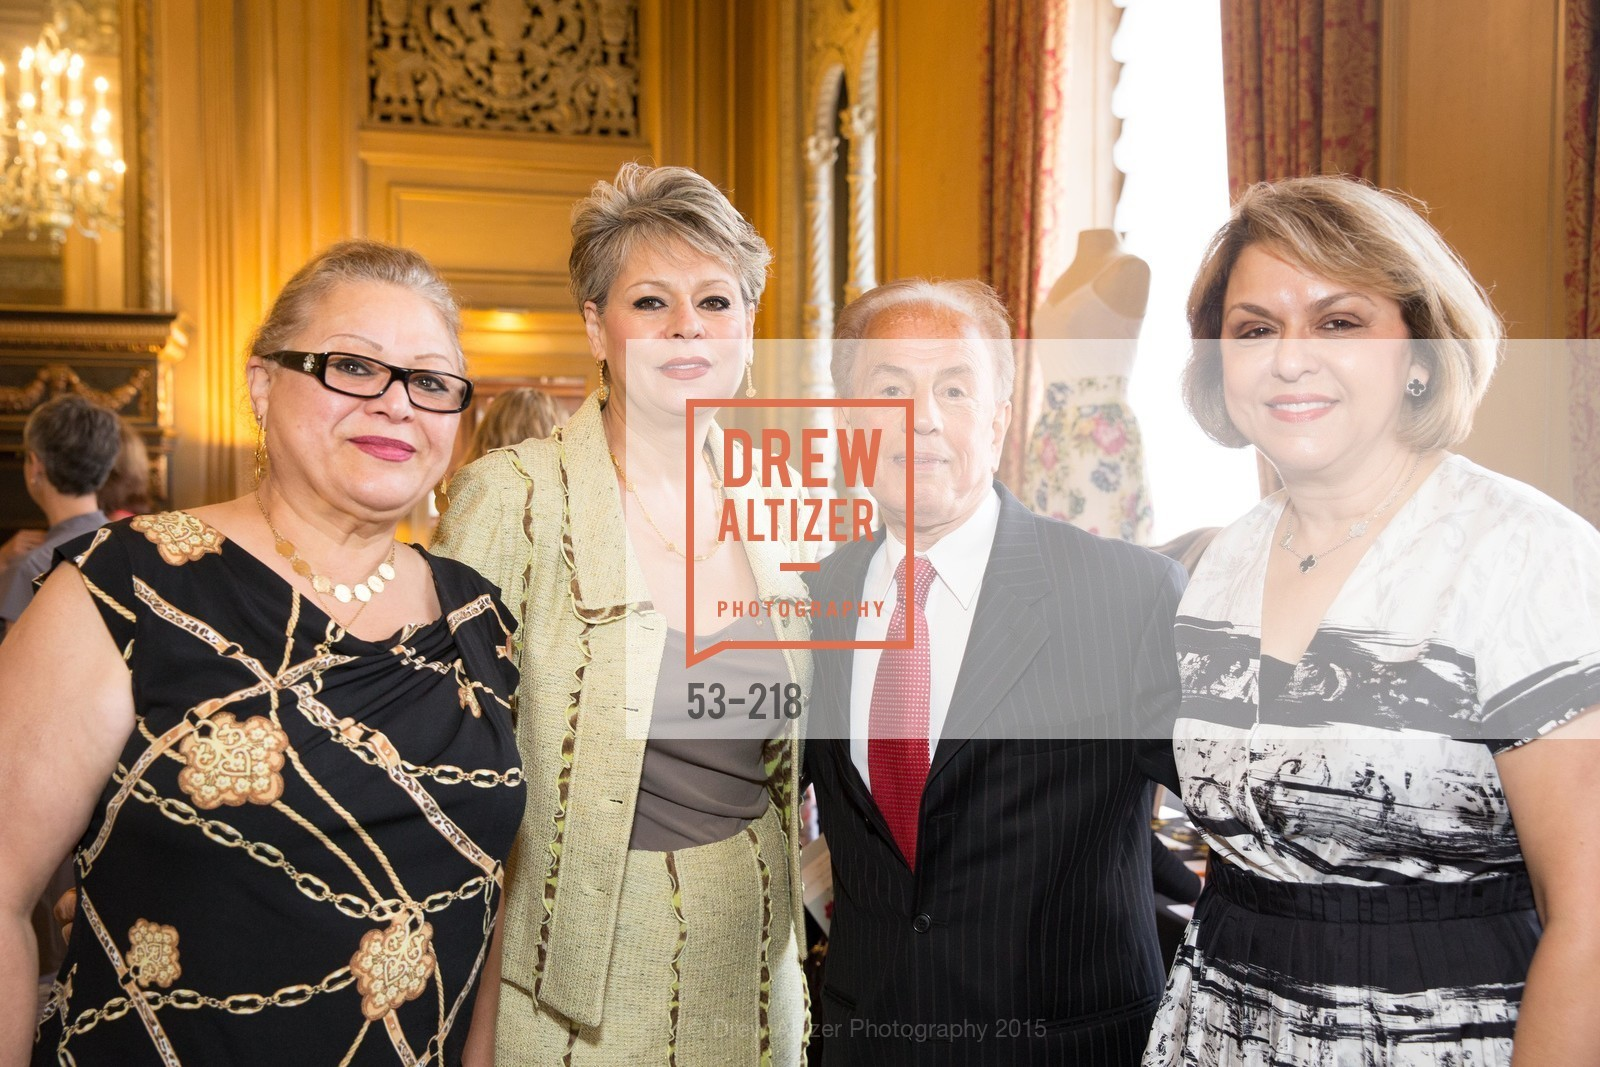 Susan Ghasemy, Sonia Tahbazof, Zand Rez, Mina Beigi, Salvation Army Flower Power Luncheon, Sir Francis Drake Hotel. 450 Powell St, August 4th, 2015,Drew Altizer, Drew Altizer Photography, full-service agency, private events, San Francisco photographer, photographer california